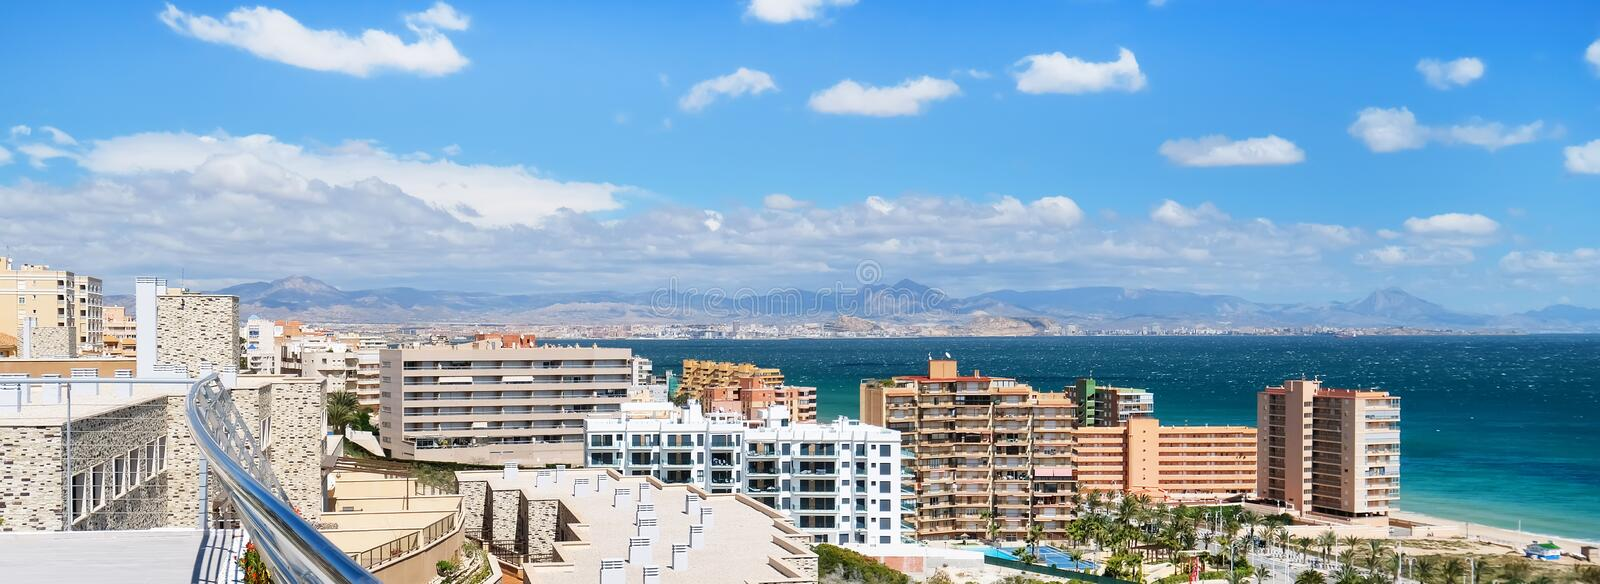 Horizontal cropped image coastline of Alicante. Spain stock image